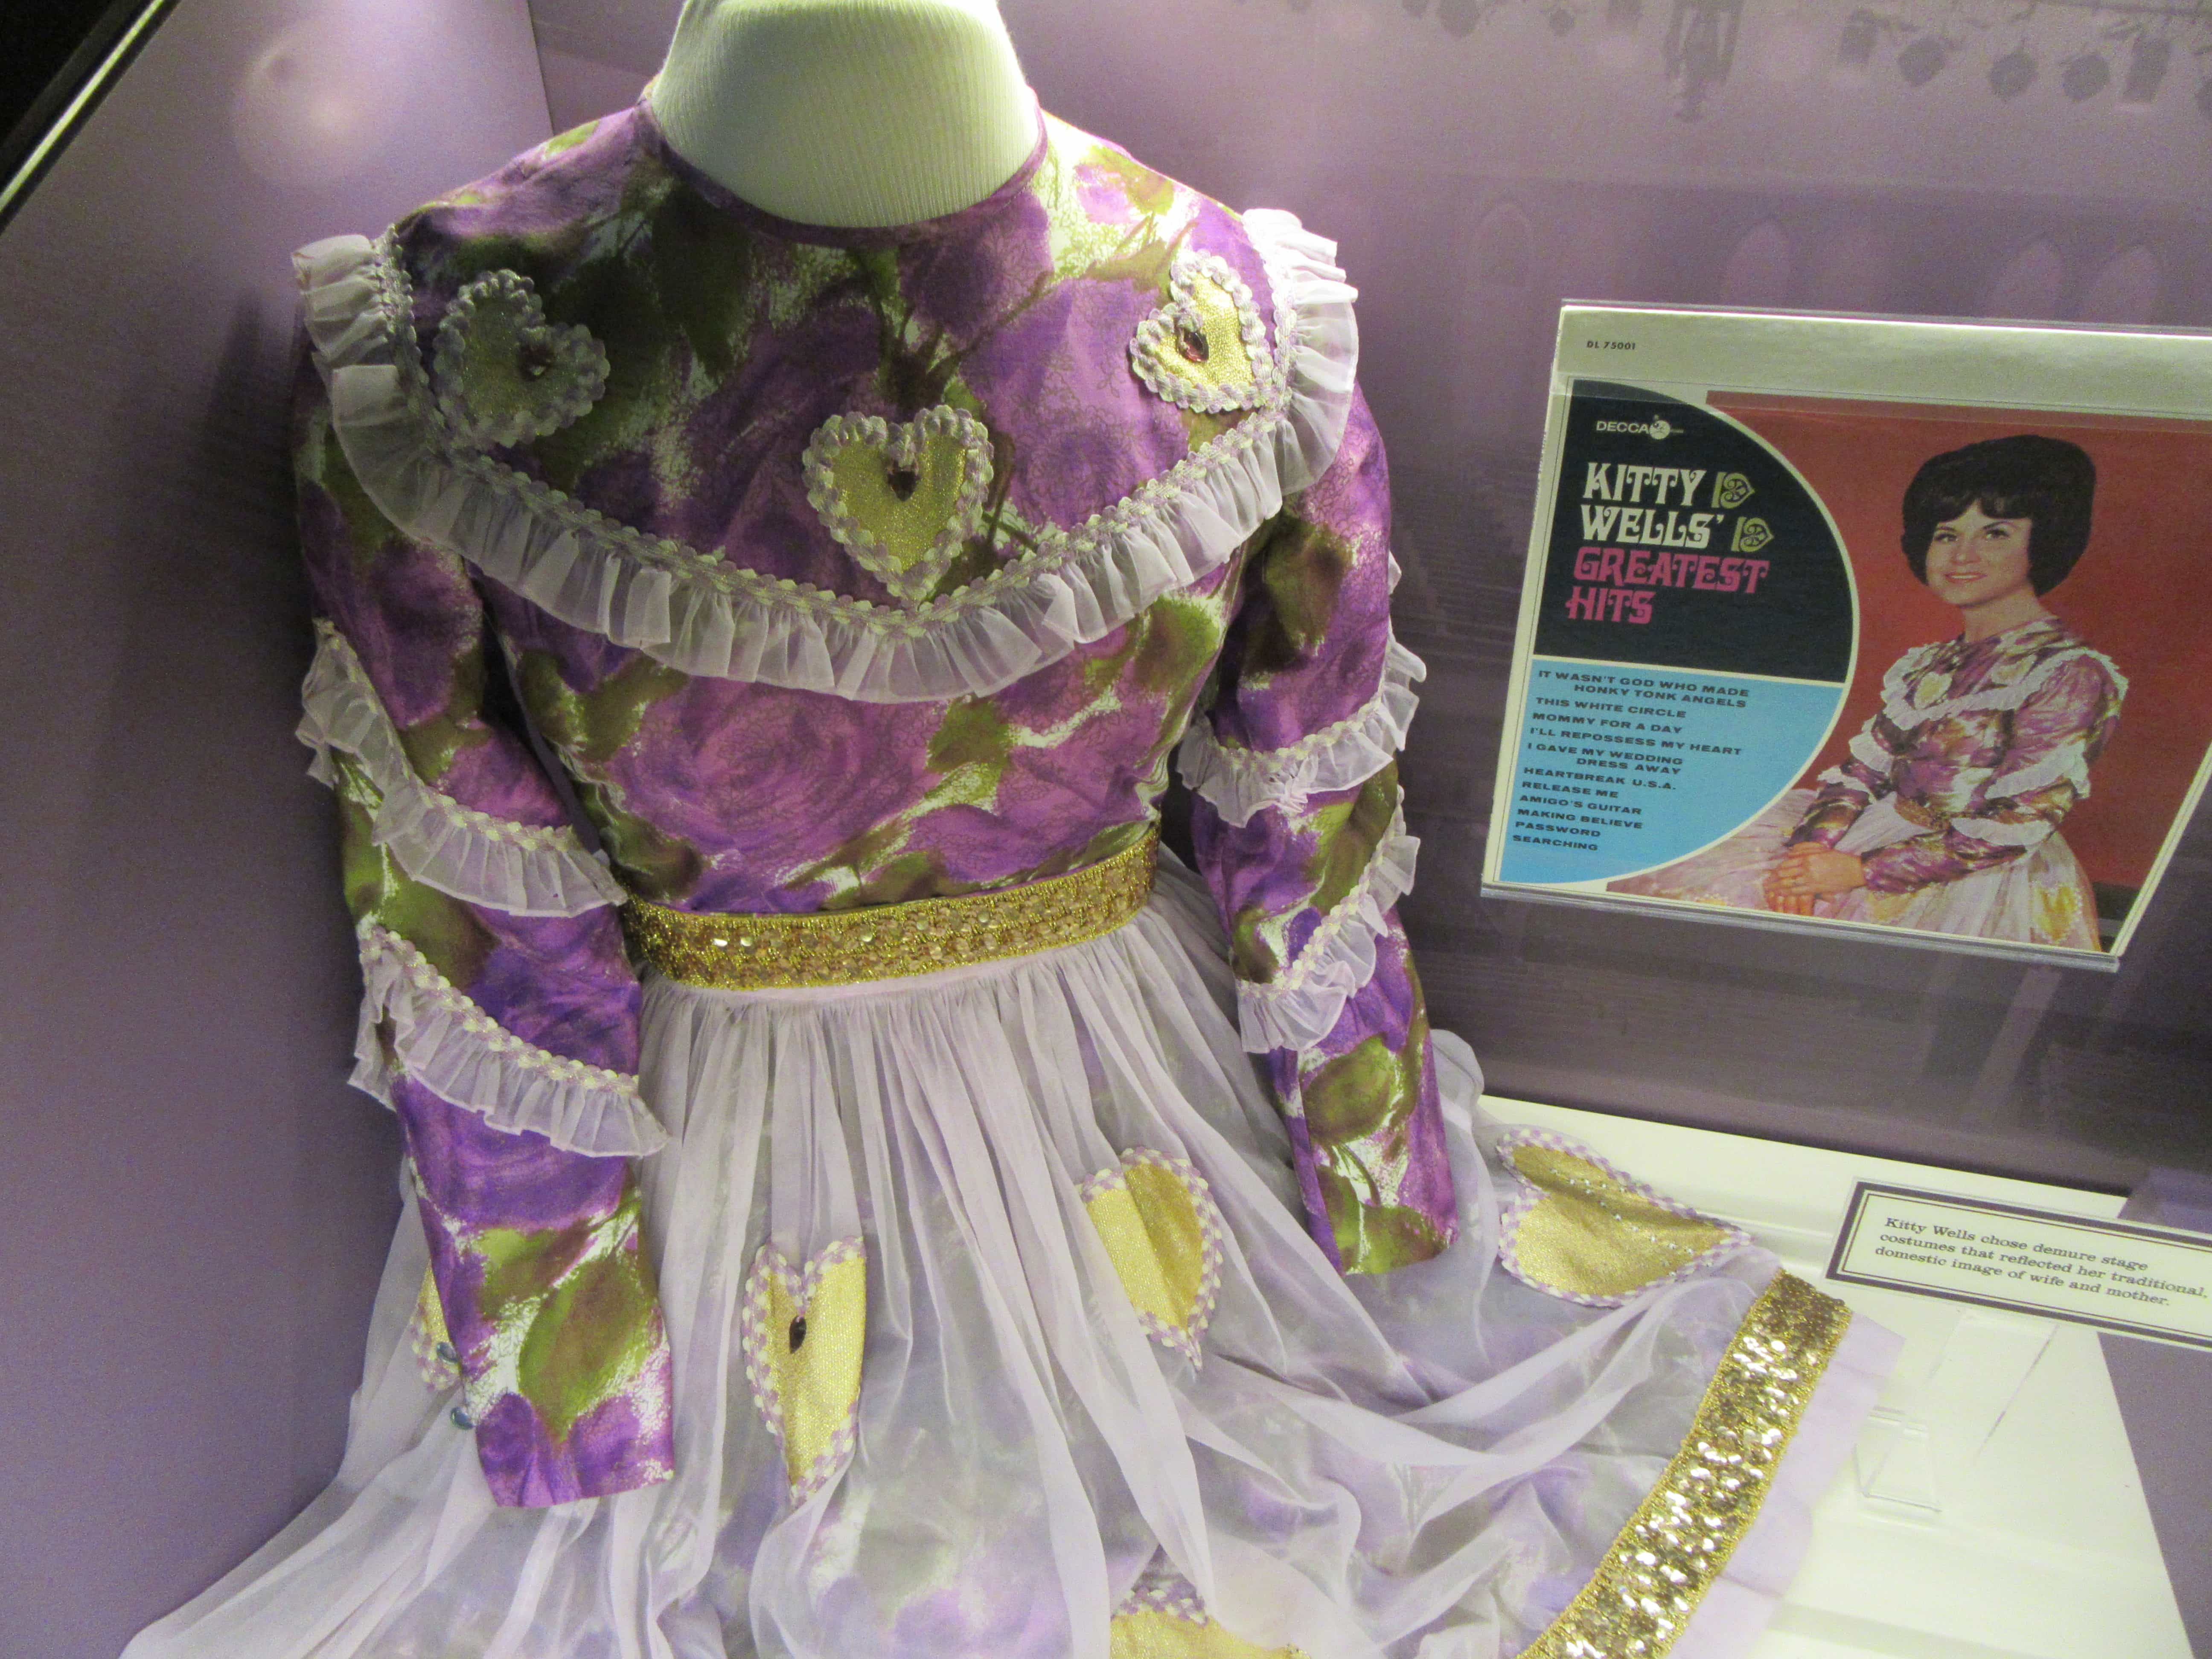 Kitty Wells costume worn while performing at the Grand Ole Opry Nashville.